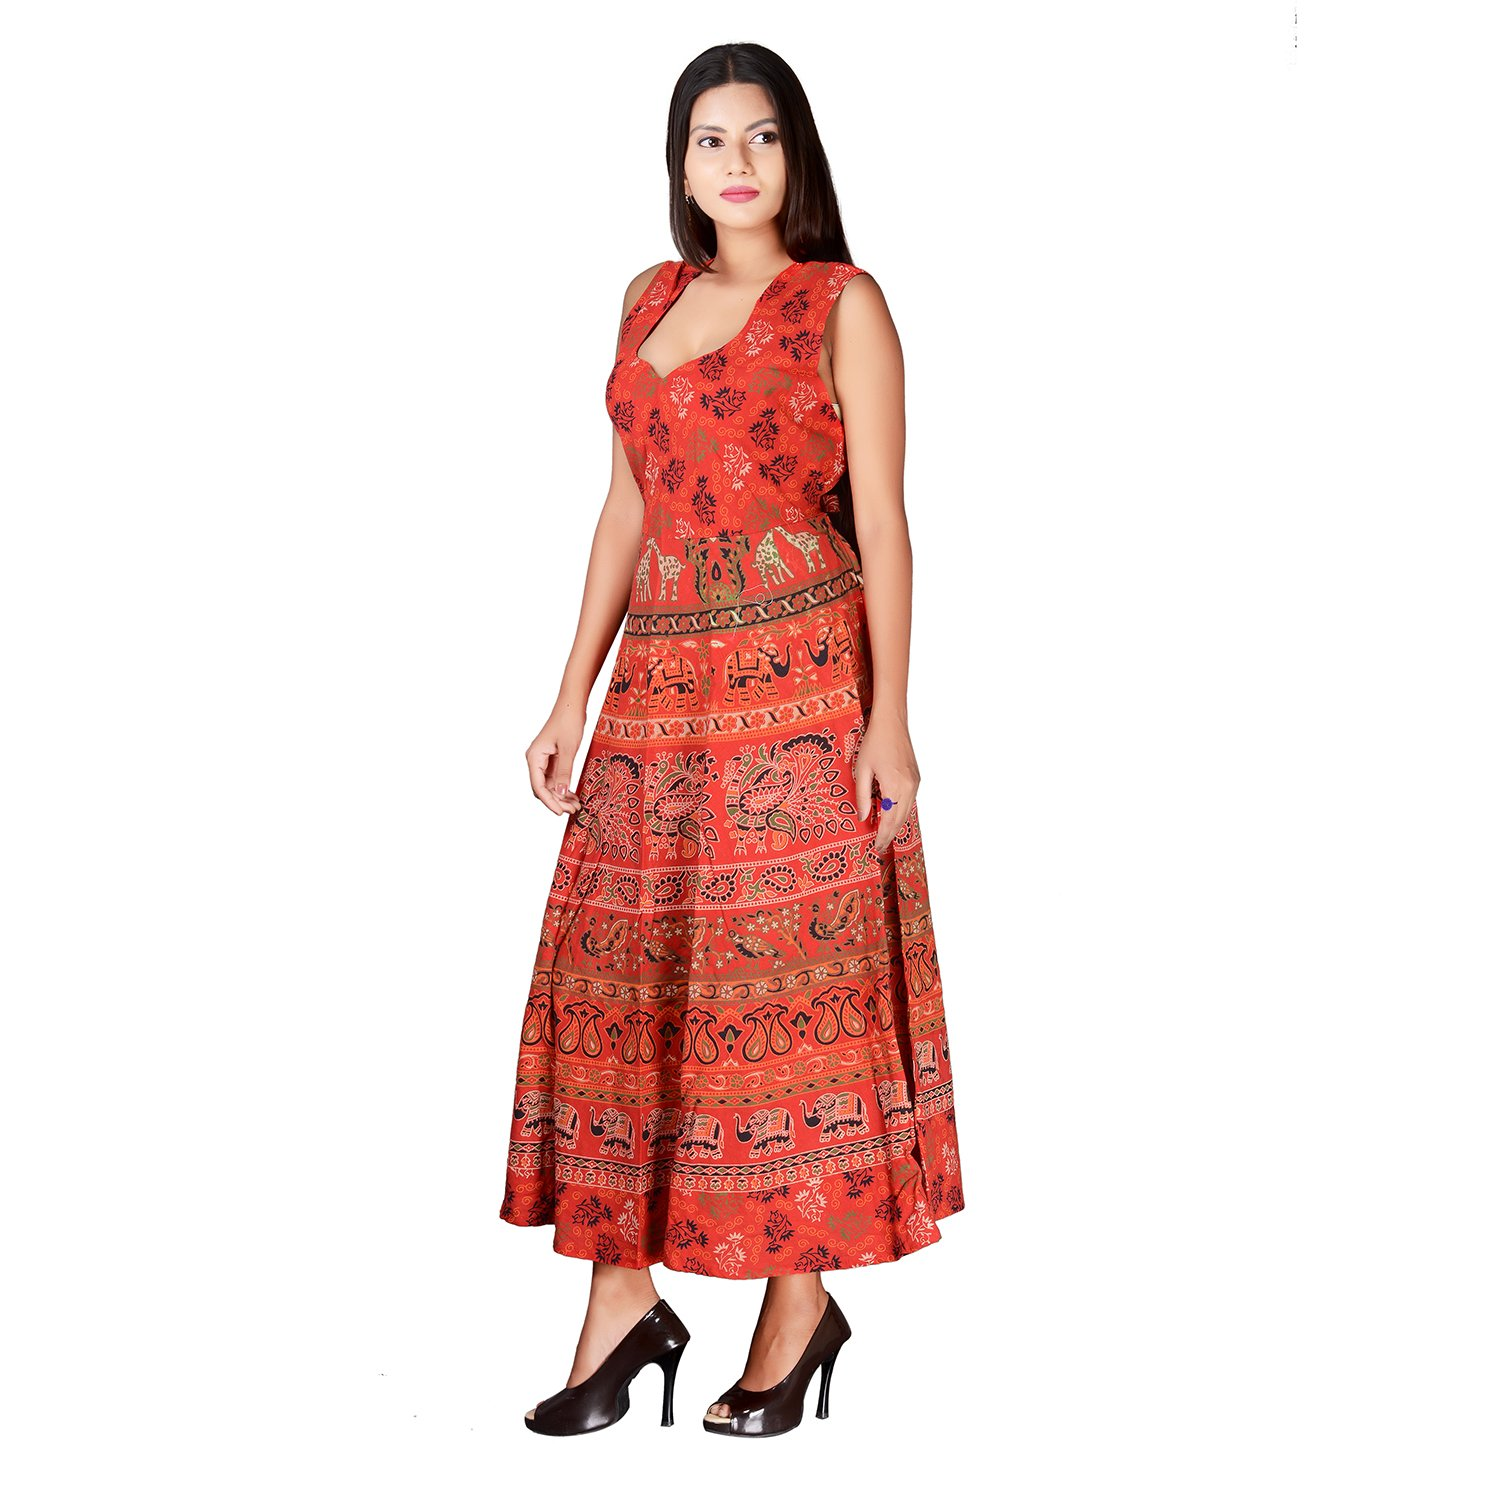 fabcolors Casual Wear Maxi Dress for Women - Floral Print Long Maxi Dress  -Orange  Amazon.in  Clothing   Accessories ef8e61387